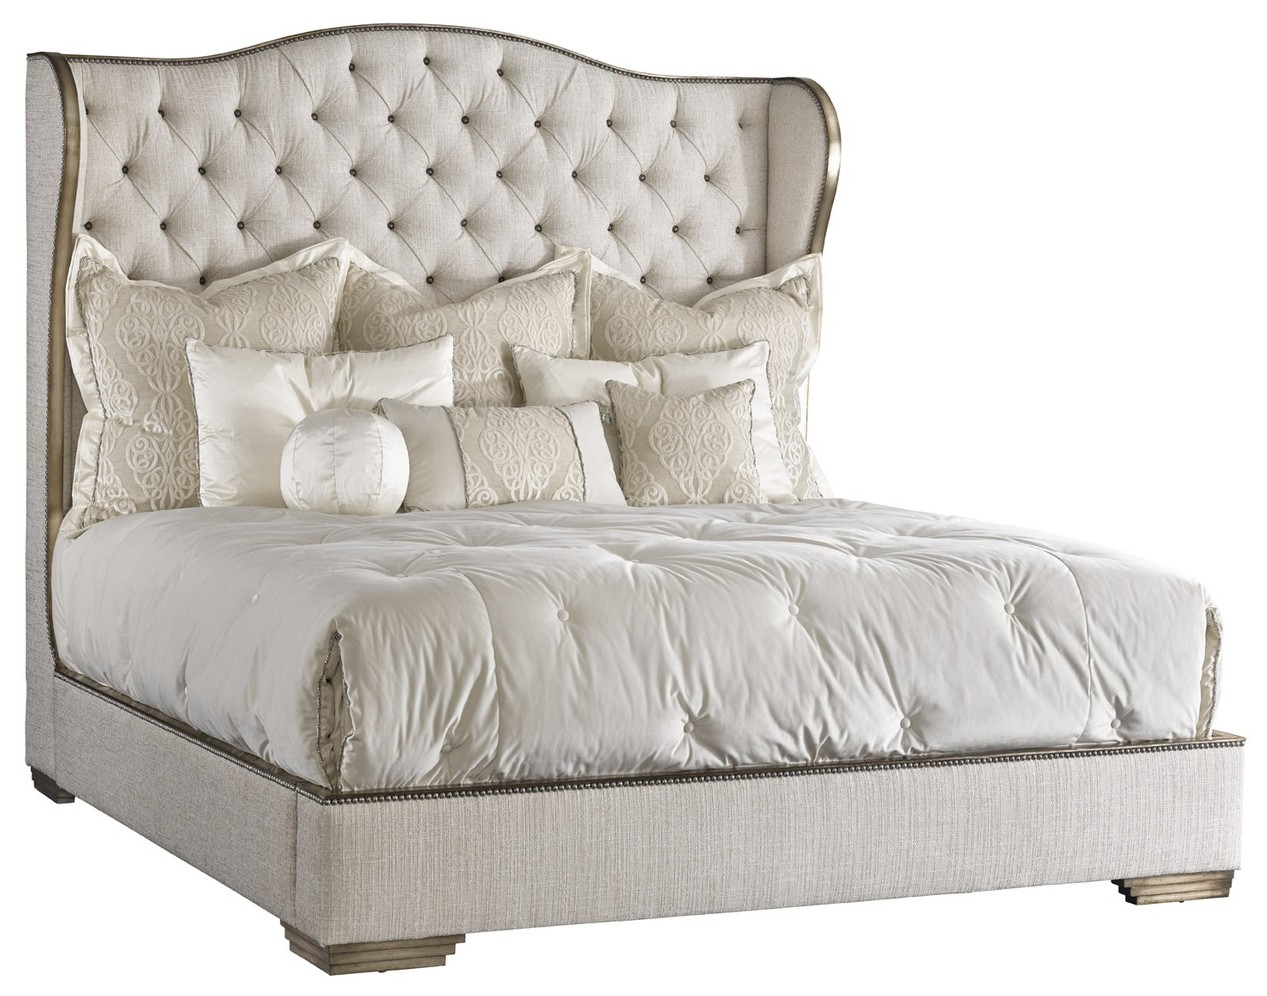 beds  queen king  california king sizes bed with tufted headboard in aelegant. bed with tufted headboard in a elegant platinum linen